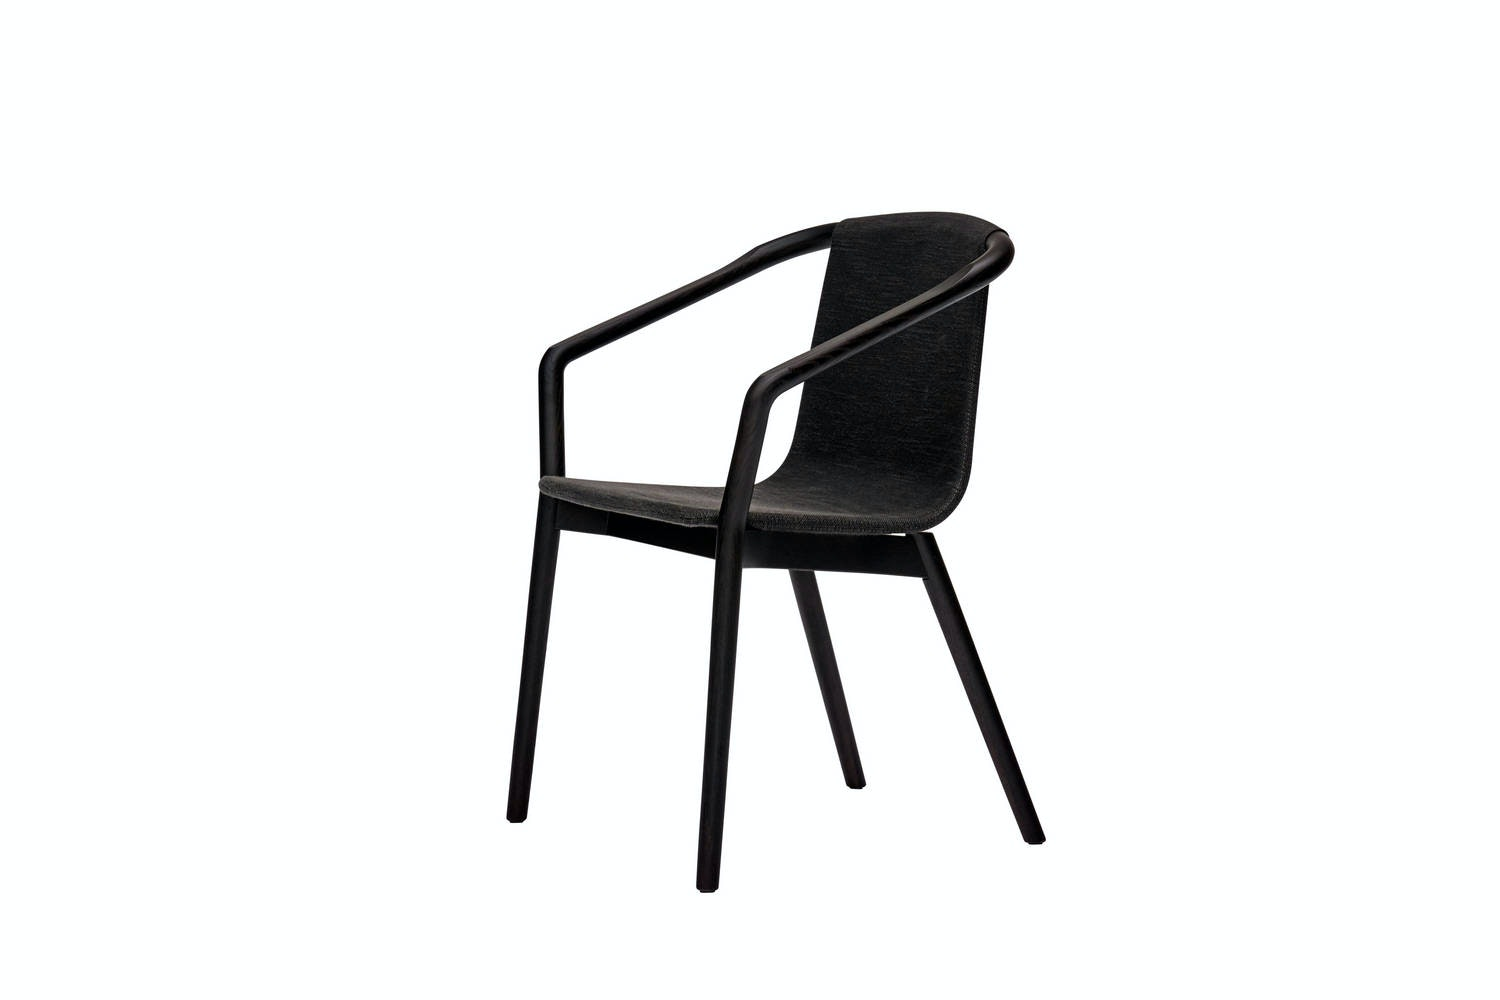 Thomas Chair by Metrica for SP01